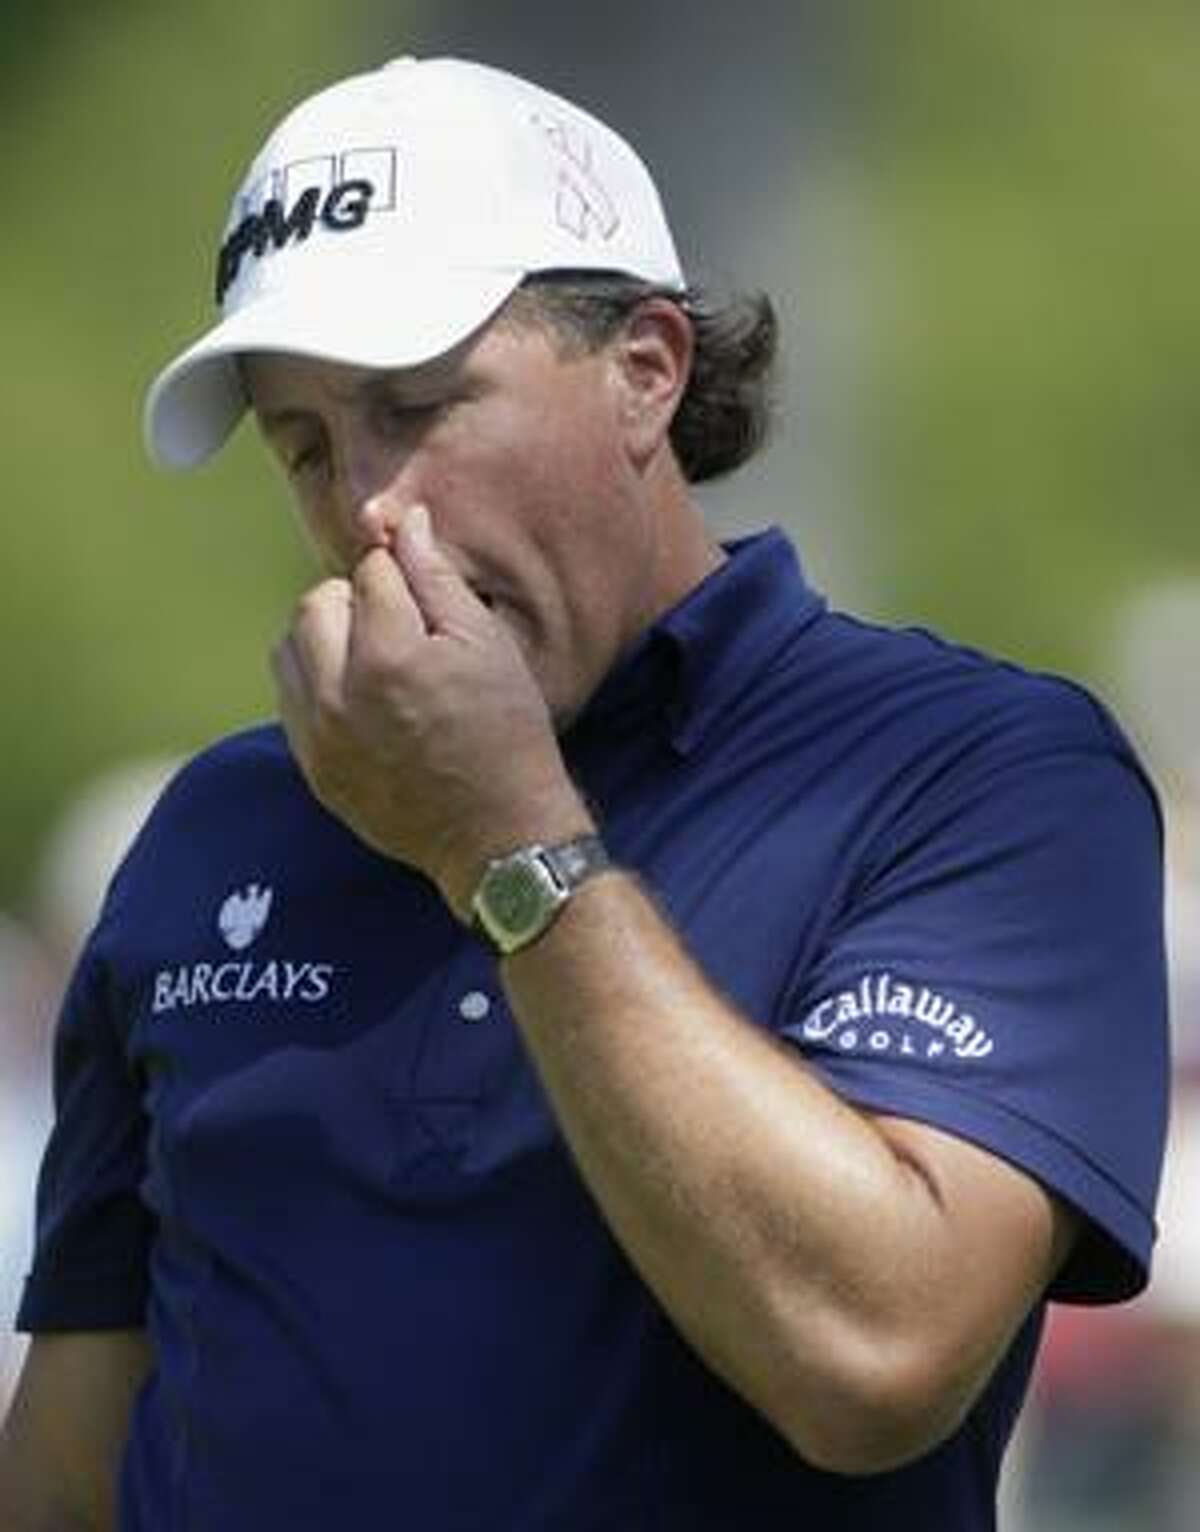 AP Phil Mickelson reacts after missing a birdie putt on the fourth hole during the second round of the 91st PGA Championship at the Hazeltine National Golf Club in Chaska, Minn., Friday.